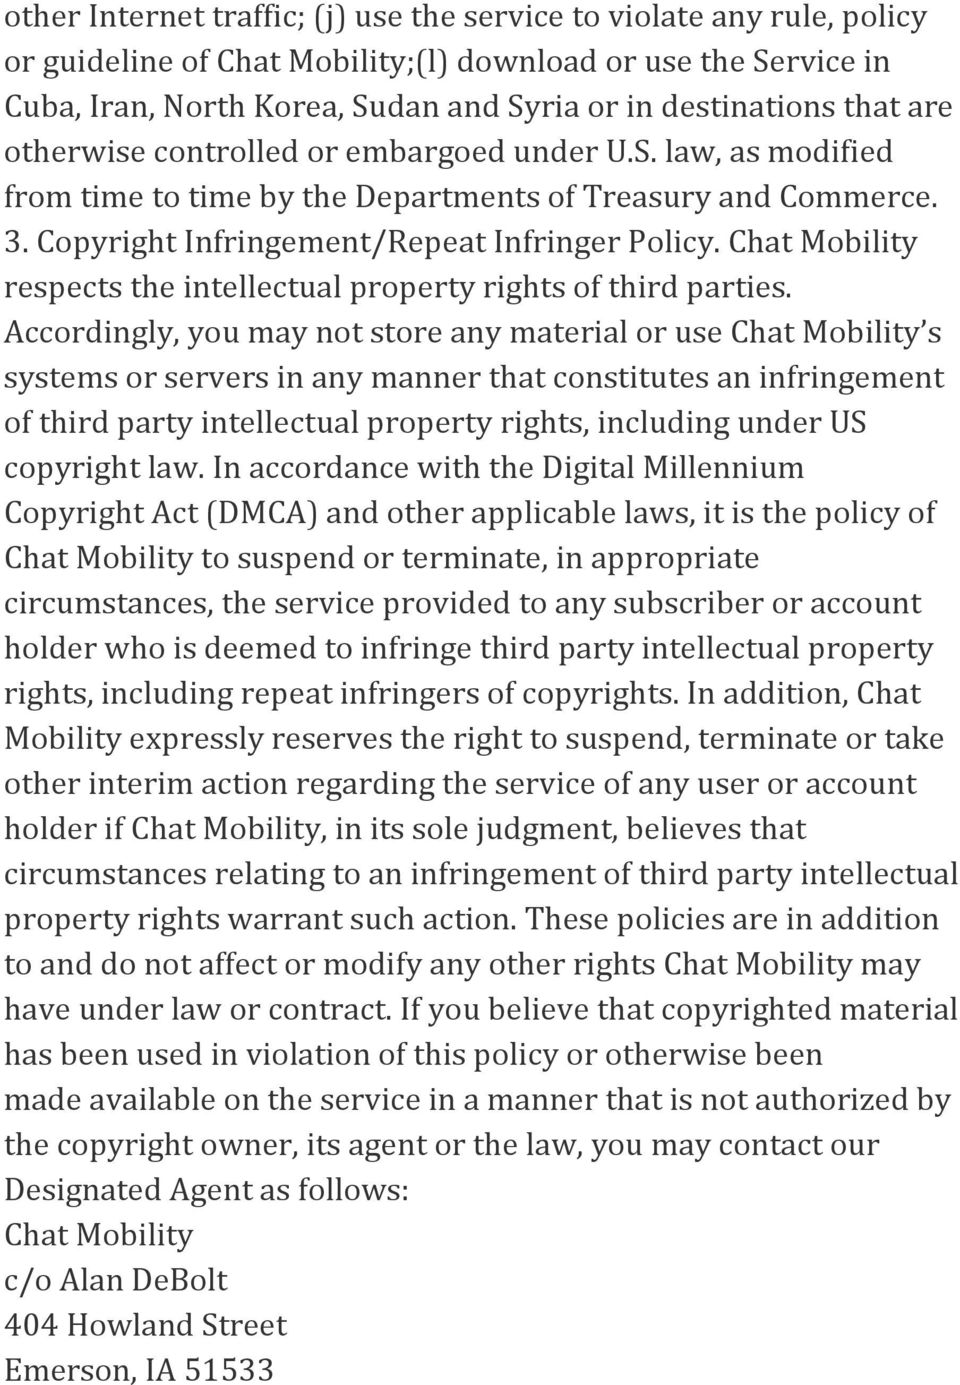 Chat Mobility respects the intellectual property rights of third parties.